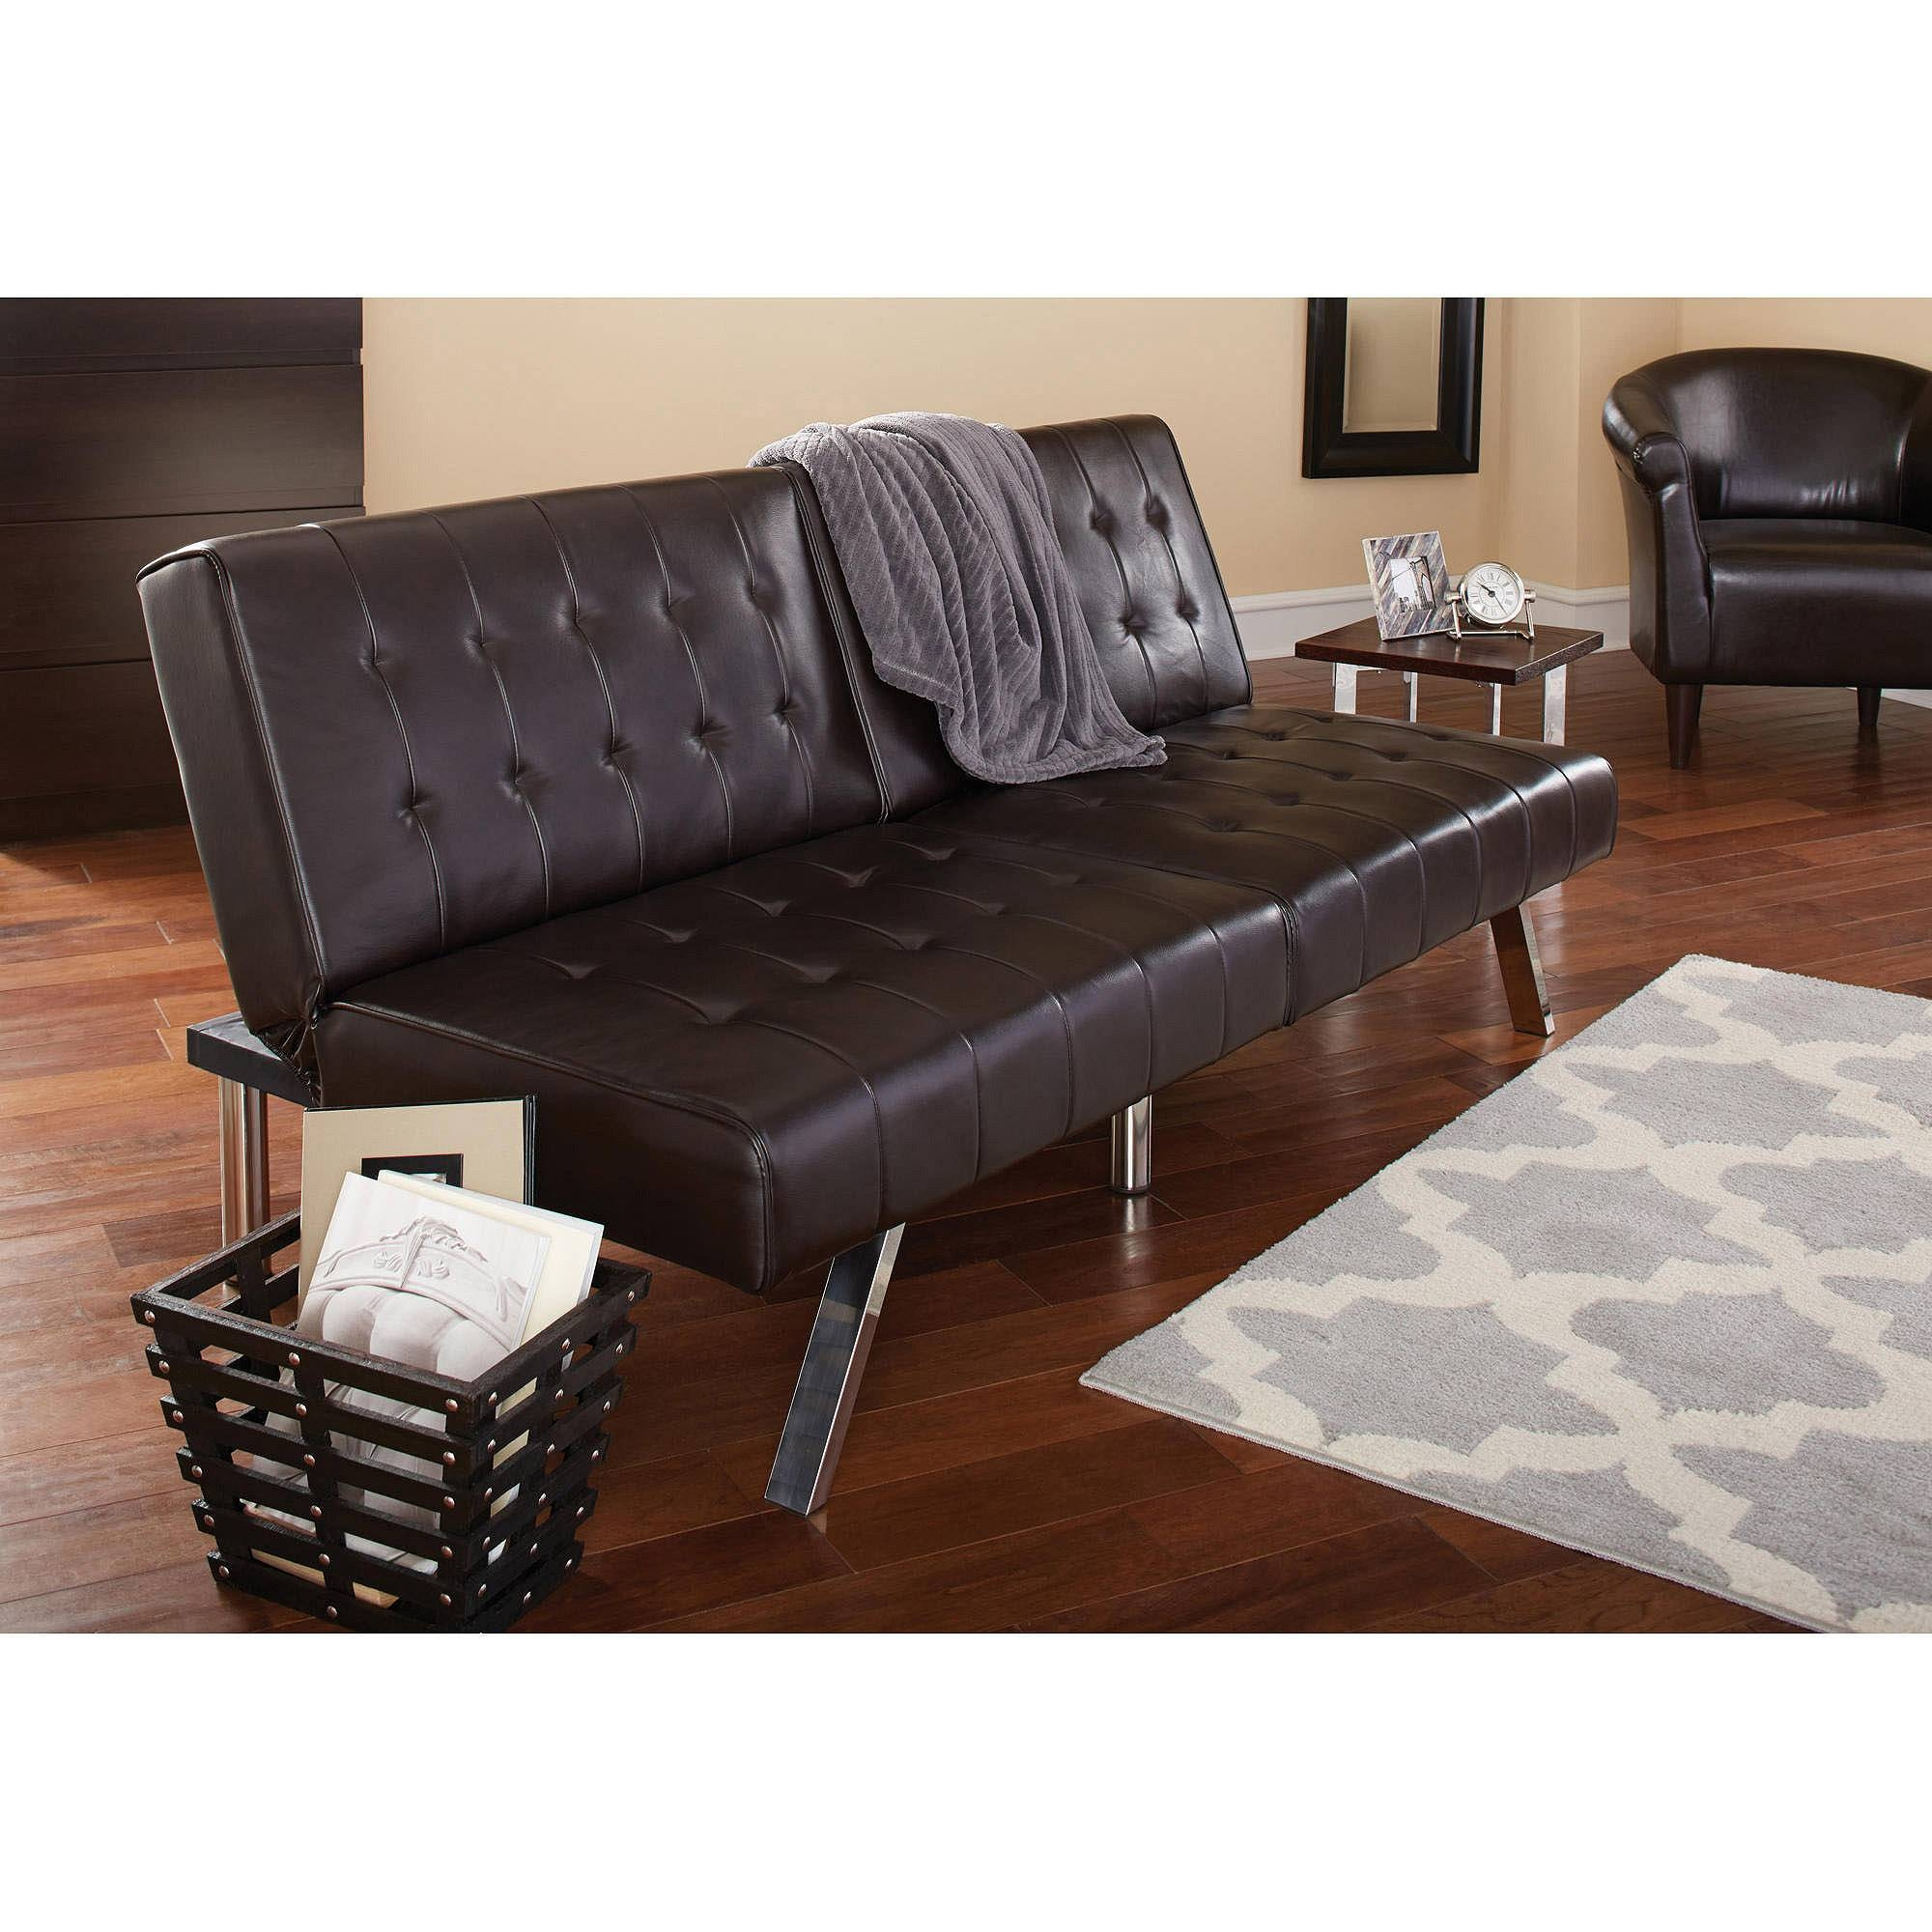 Mainstays Morgan Faux Leather Tufted Convertible Futon, Brown for Brown Leather Tufted Sofas (Image 14 of 15)